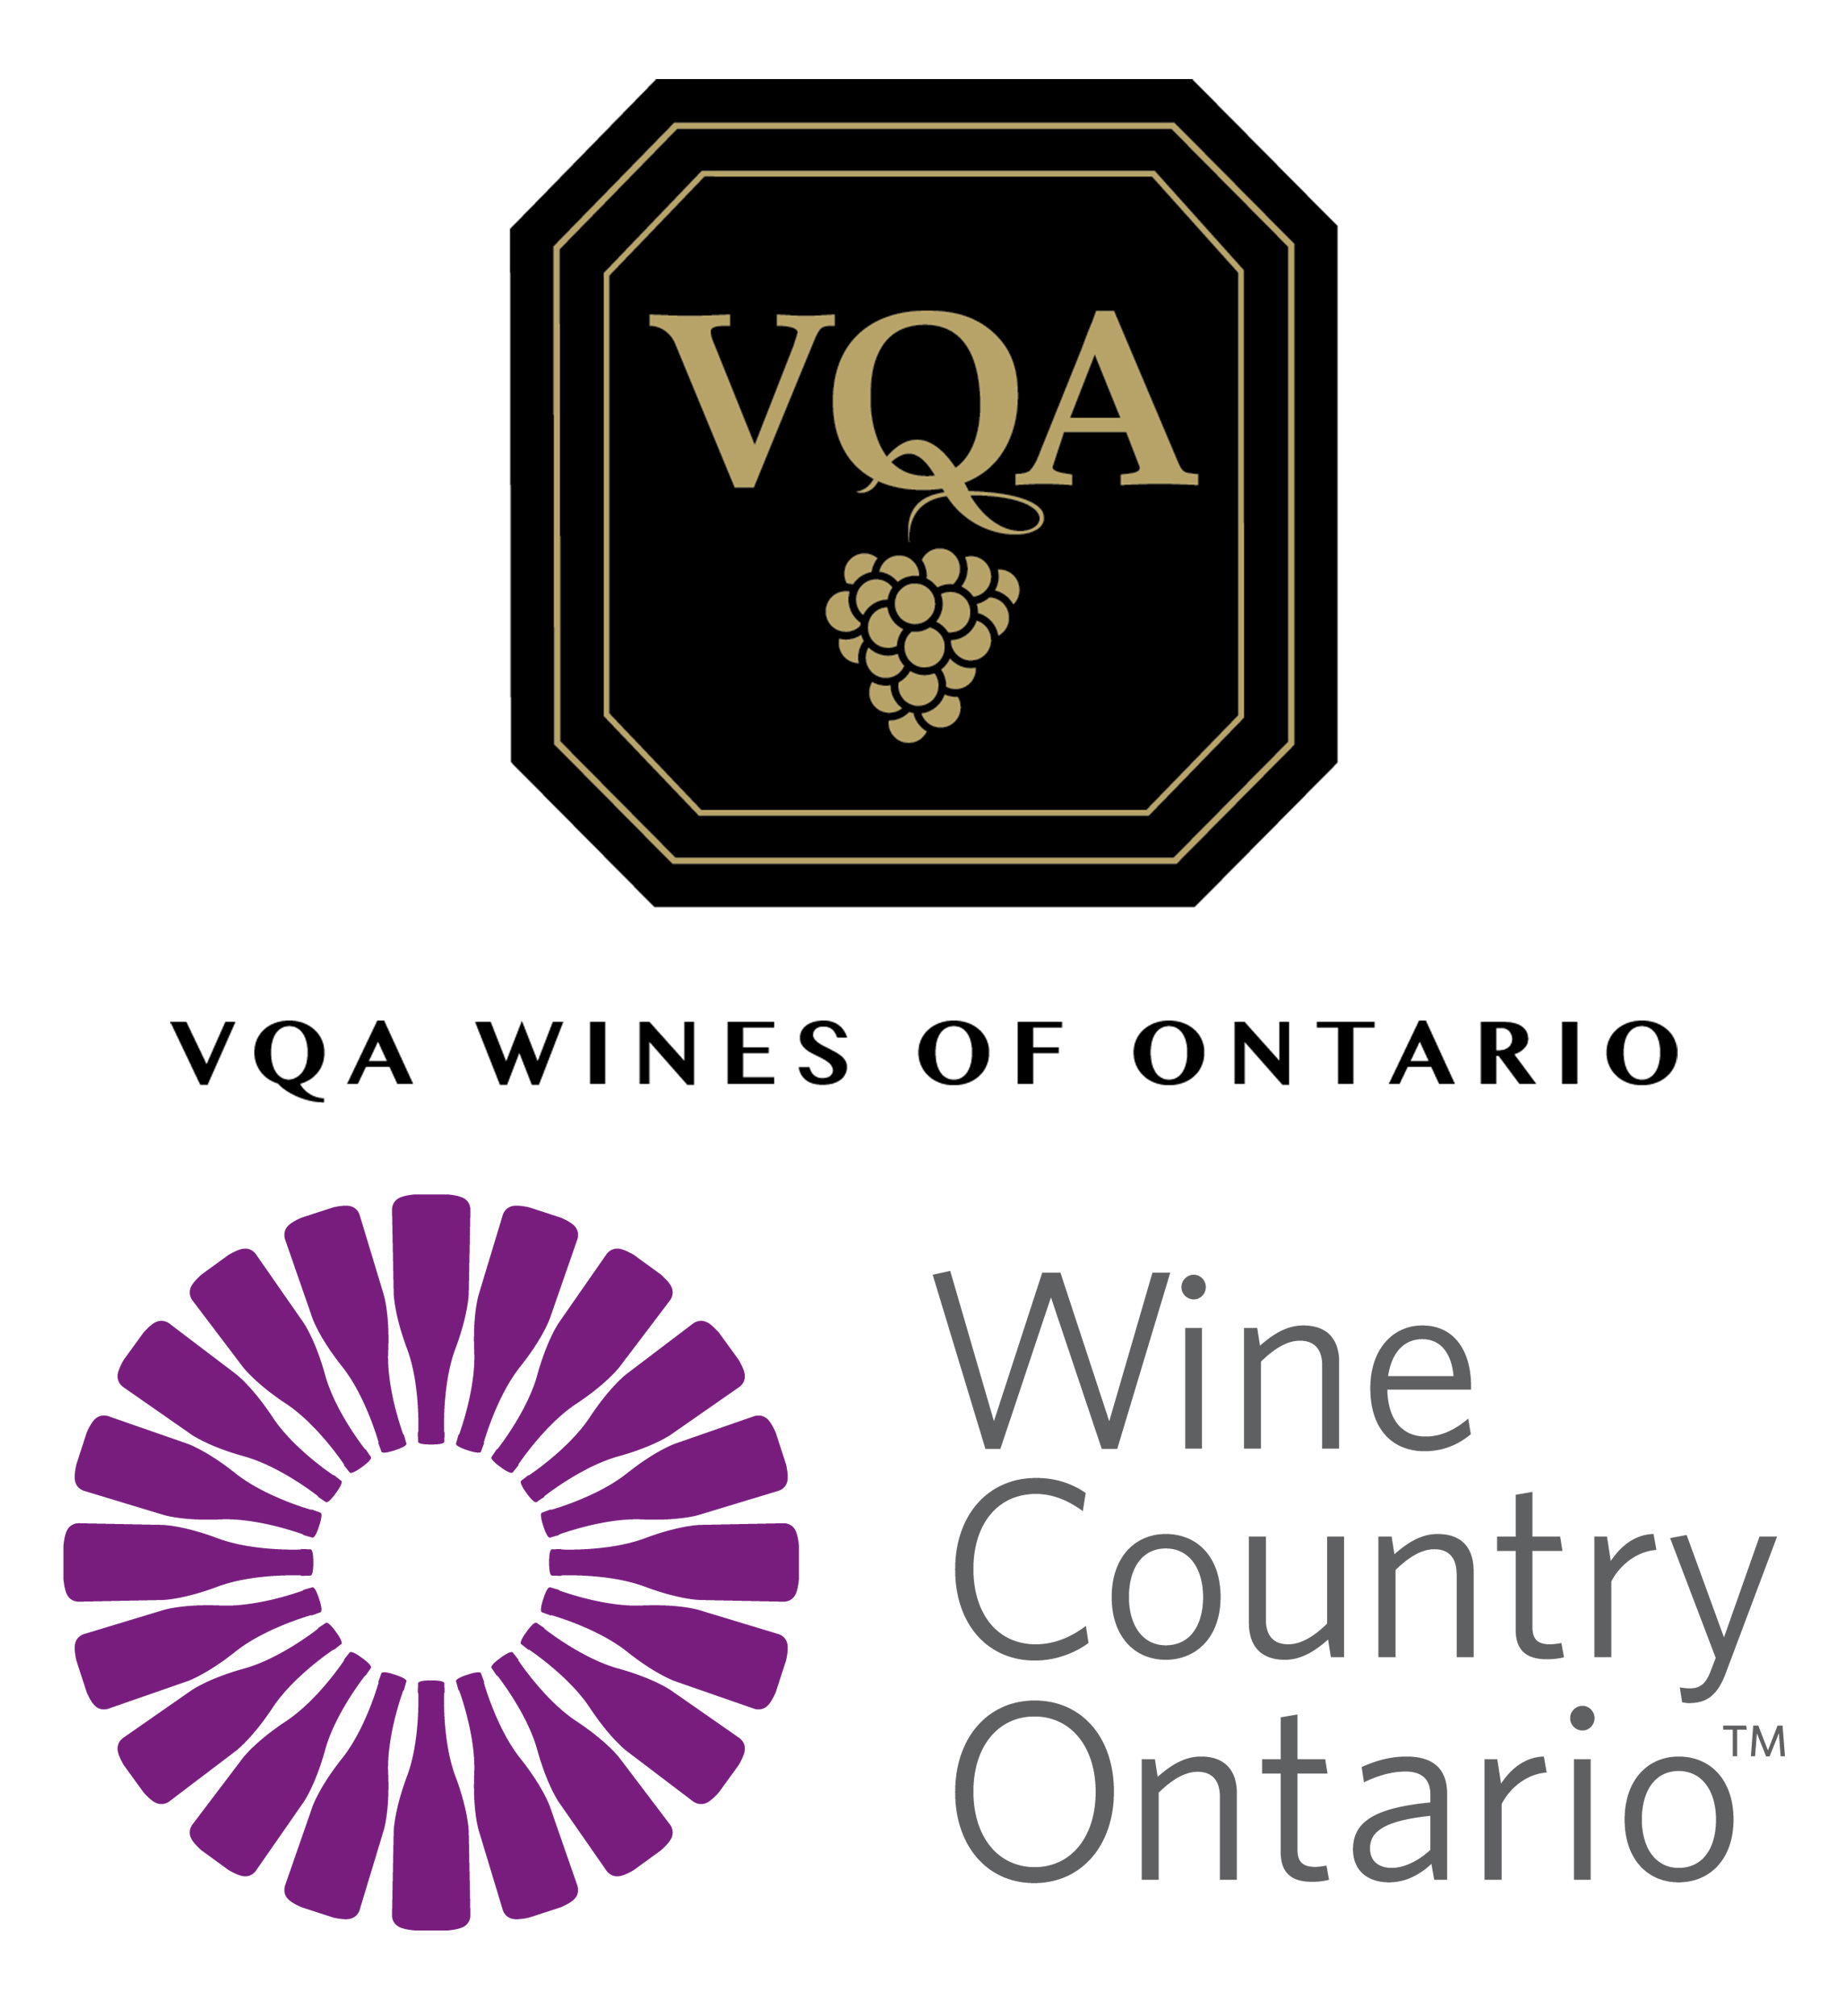 VQA Wines of Ontario